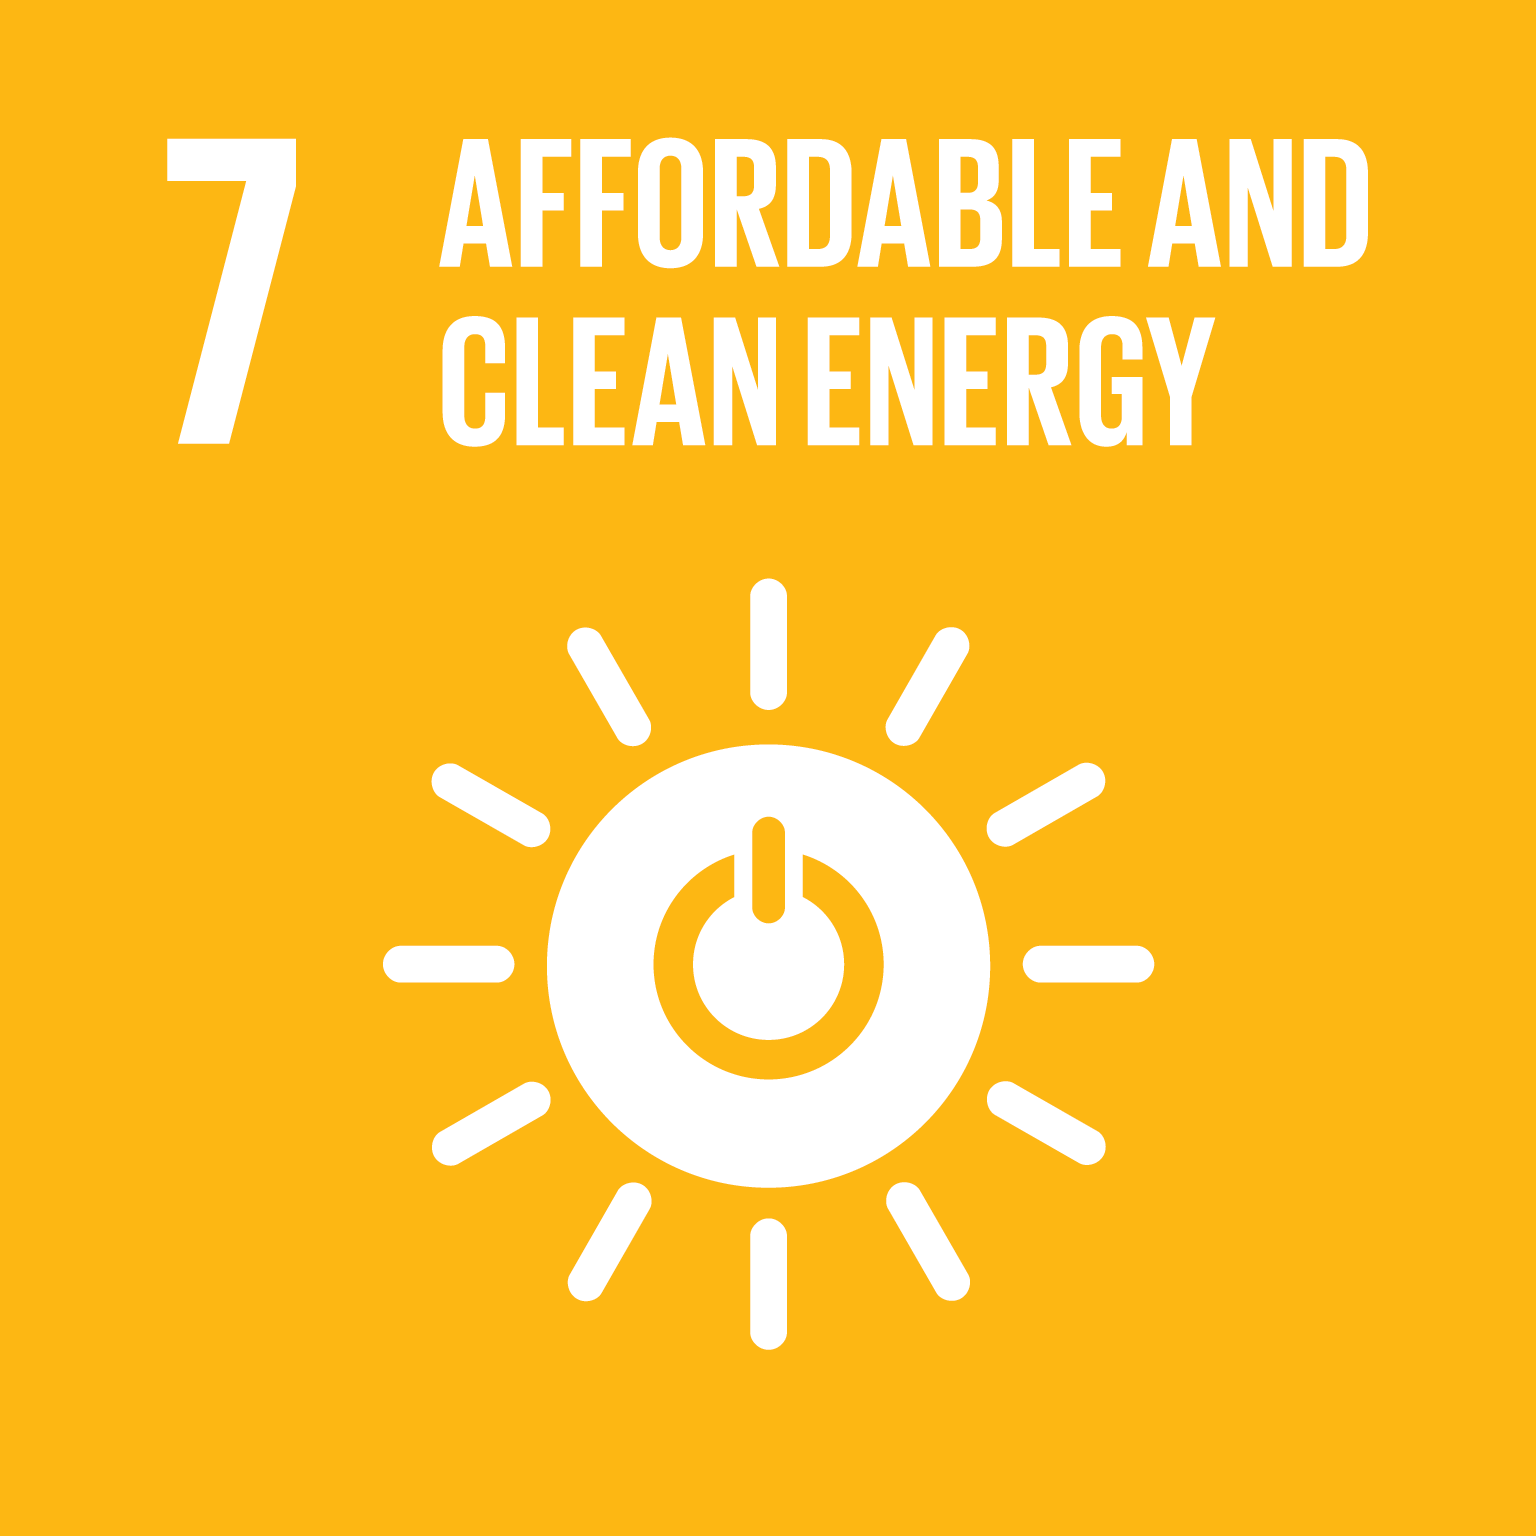 7 affordable and clean energy.png